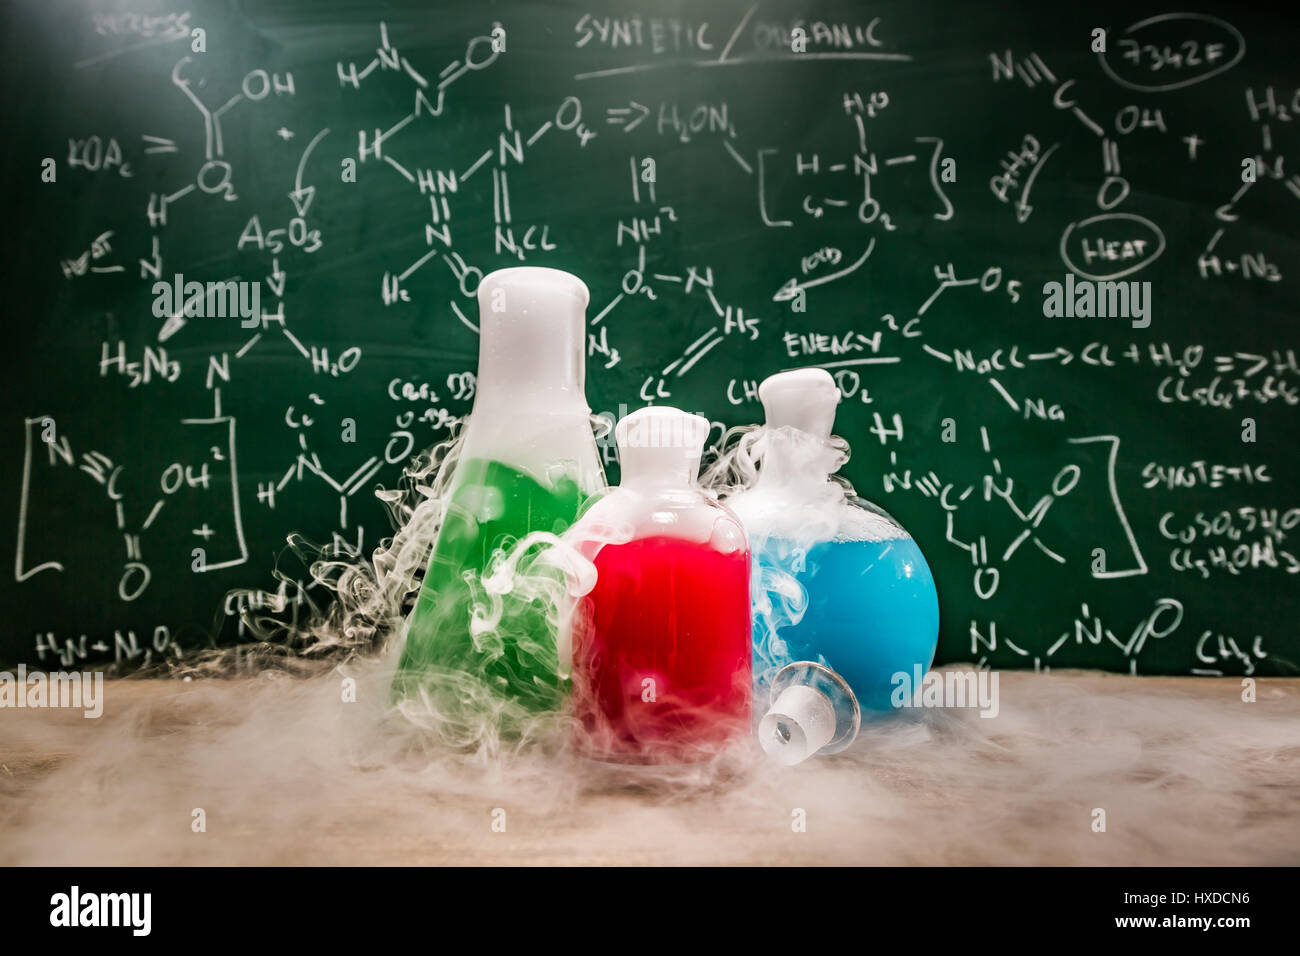 University laboratory with beakers and books Stock Photo